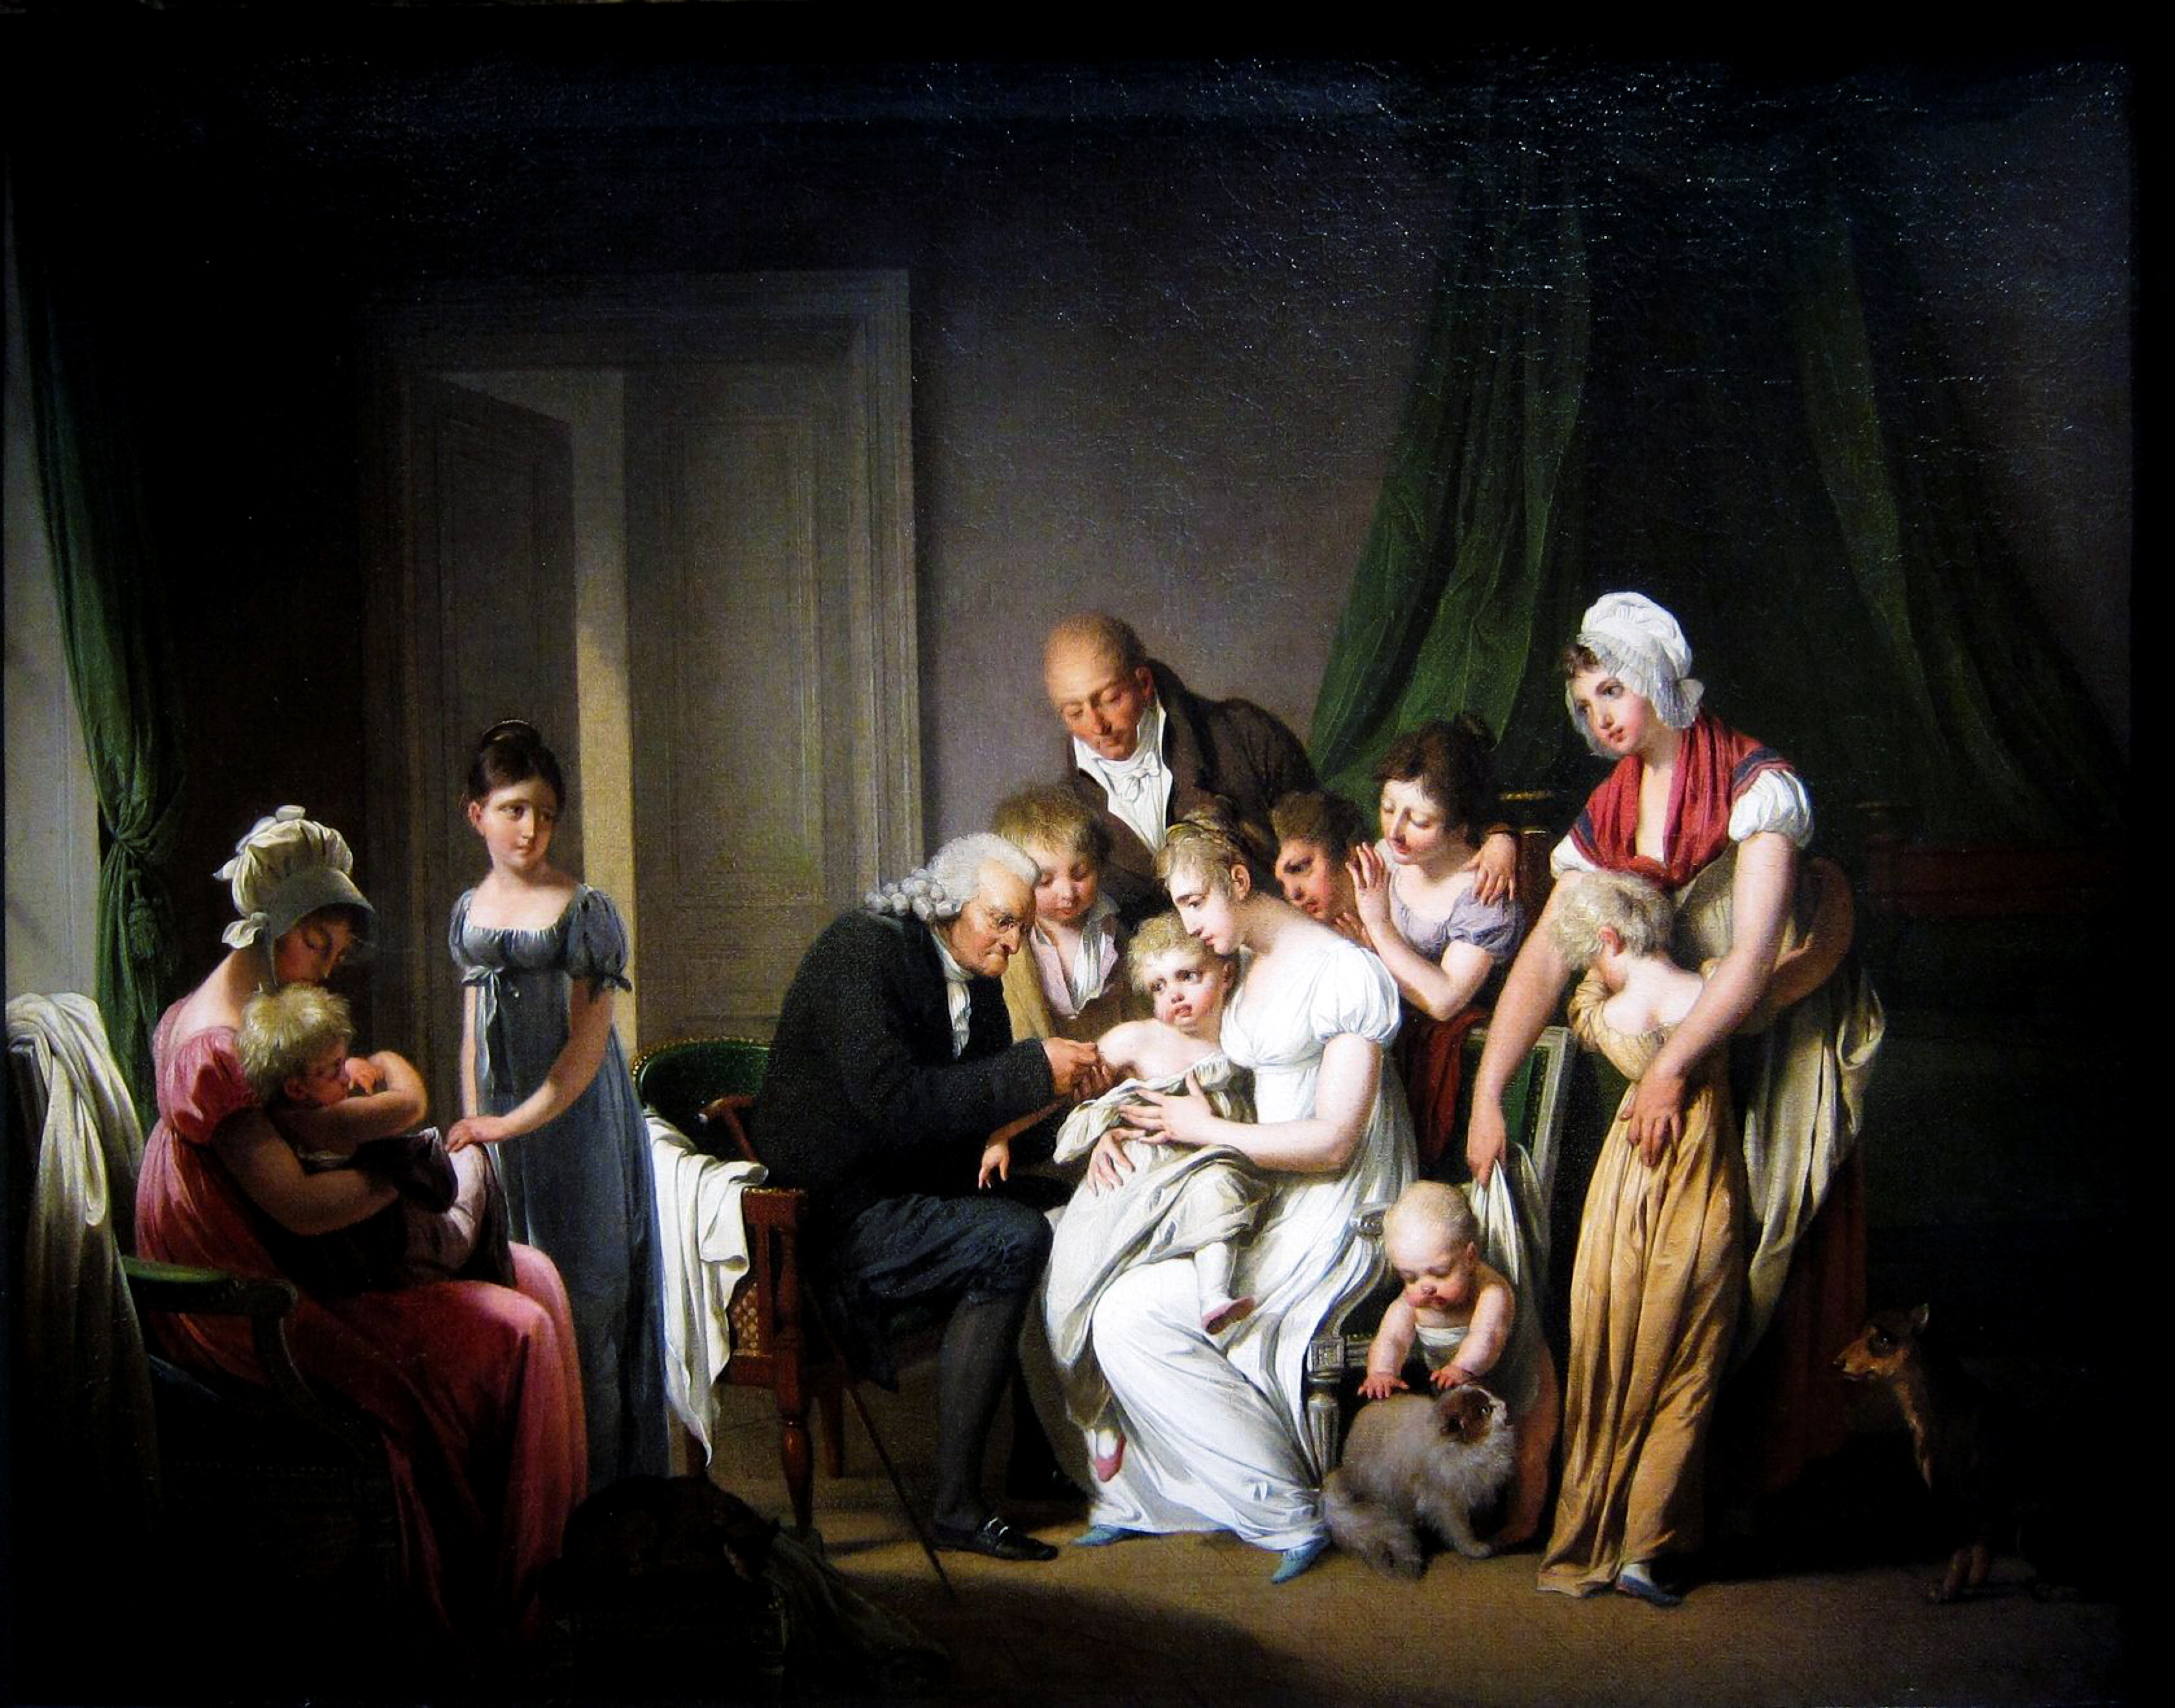 https://upload.wikimedia.org/wikipedia/commons/7/78/Louis_L%C3%A9opold_Boilly_-_L%27innoculation.jpg